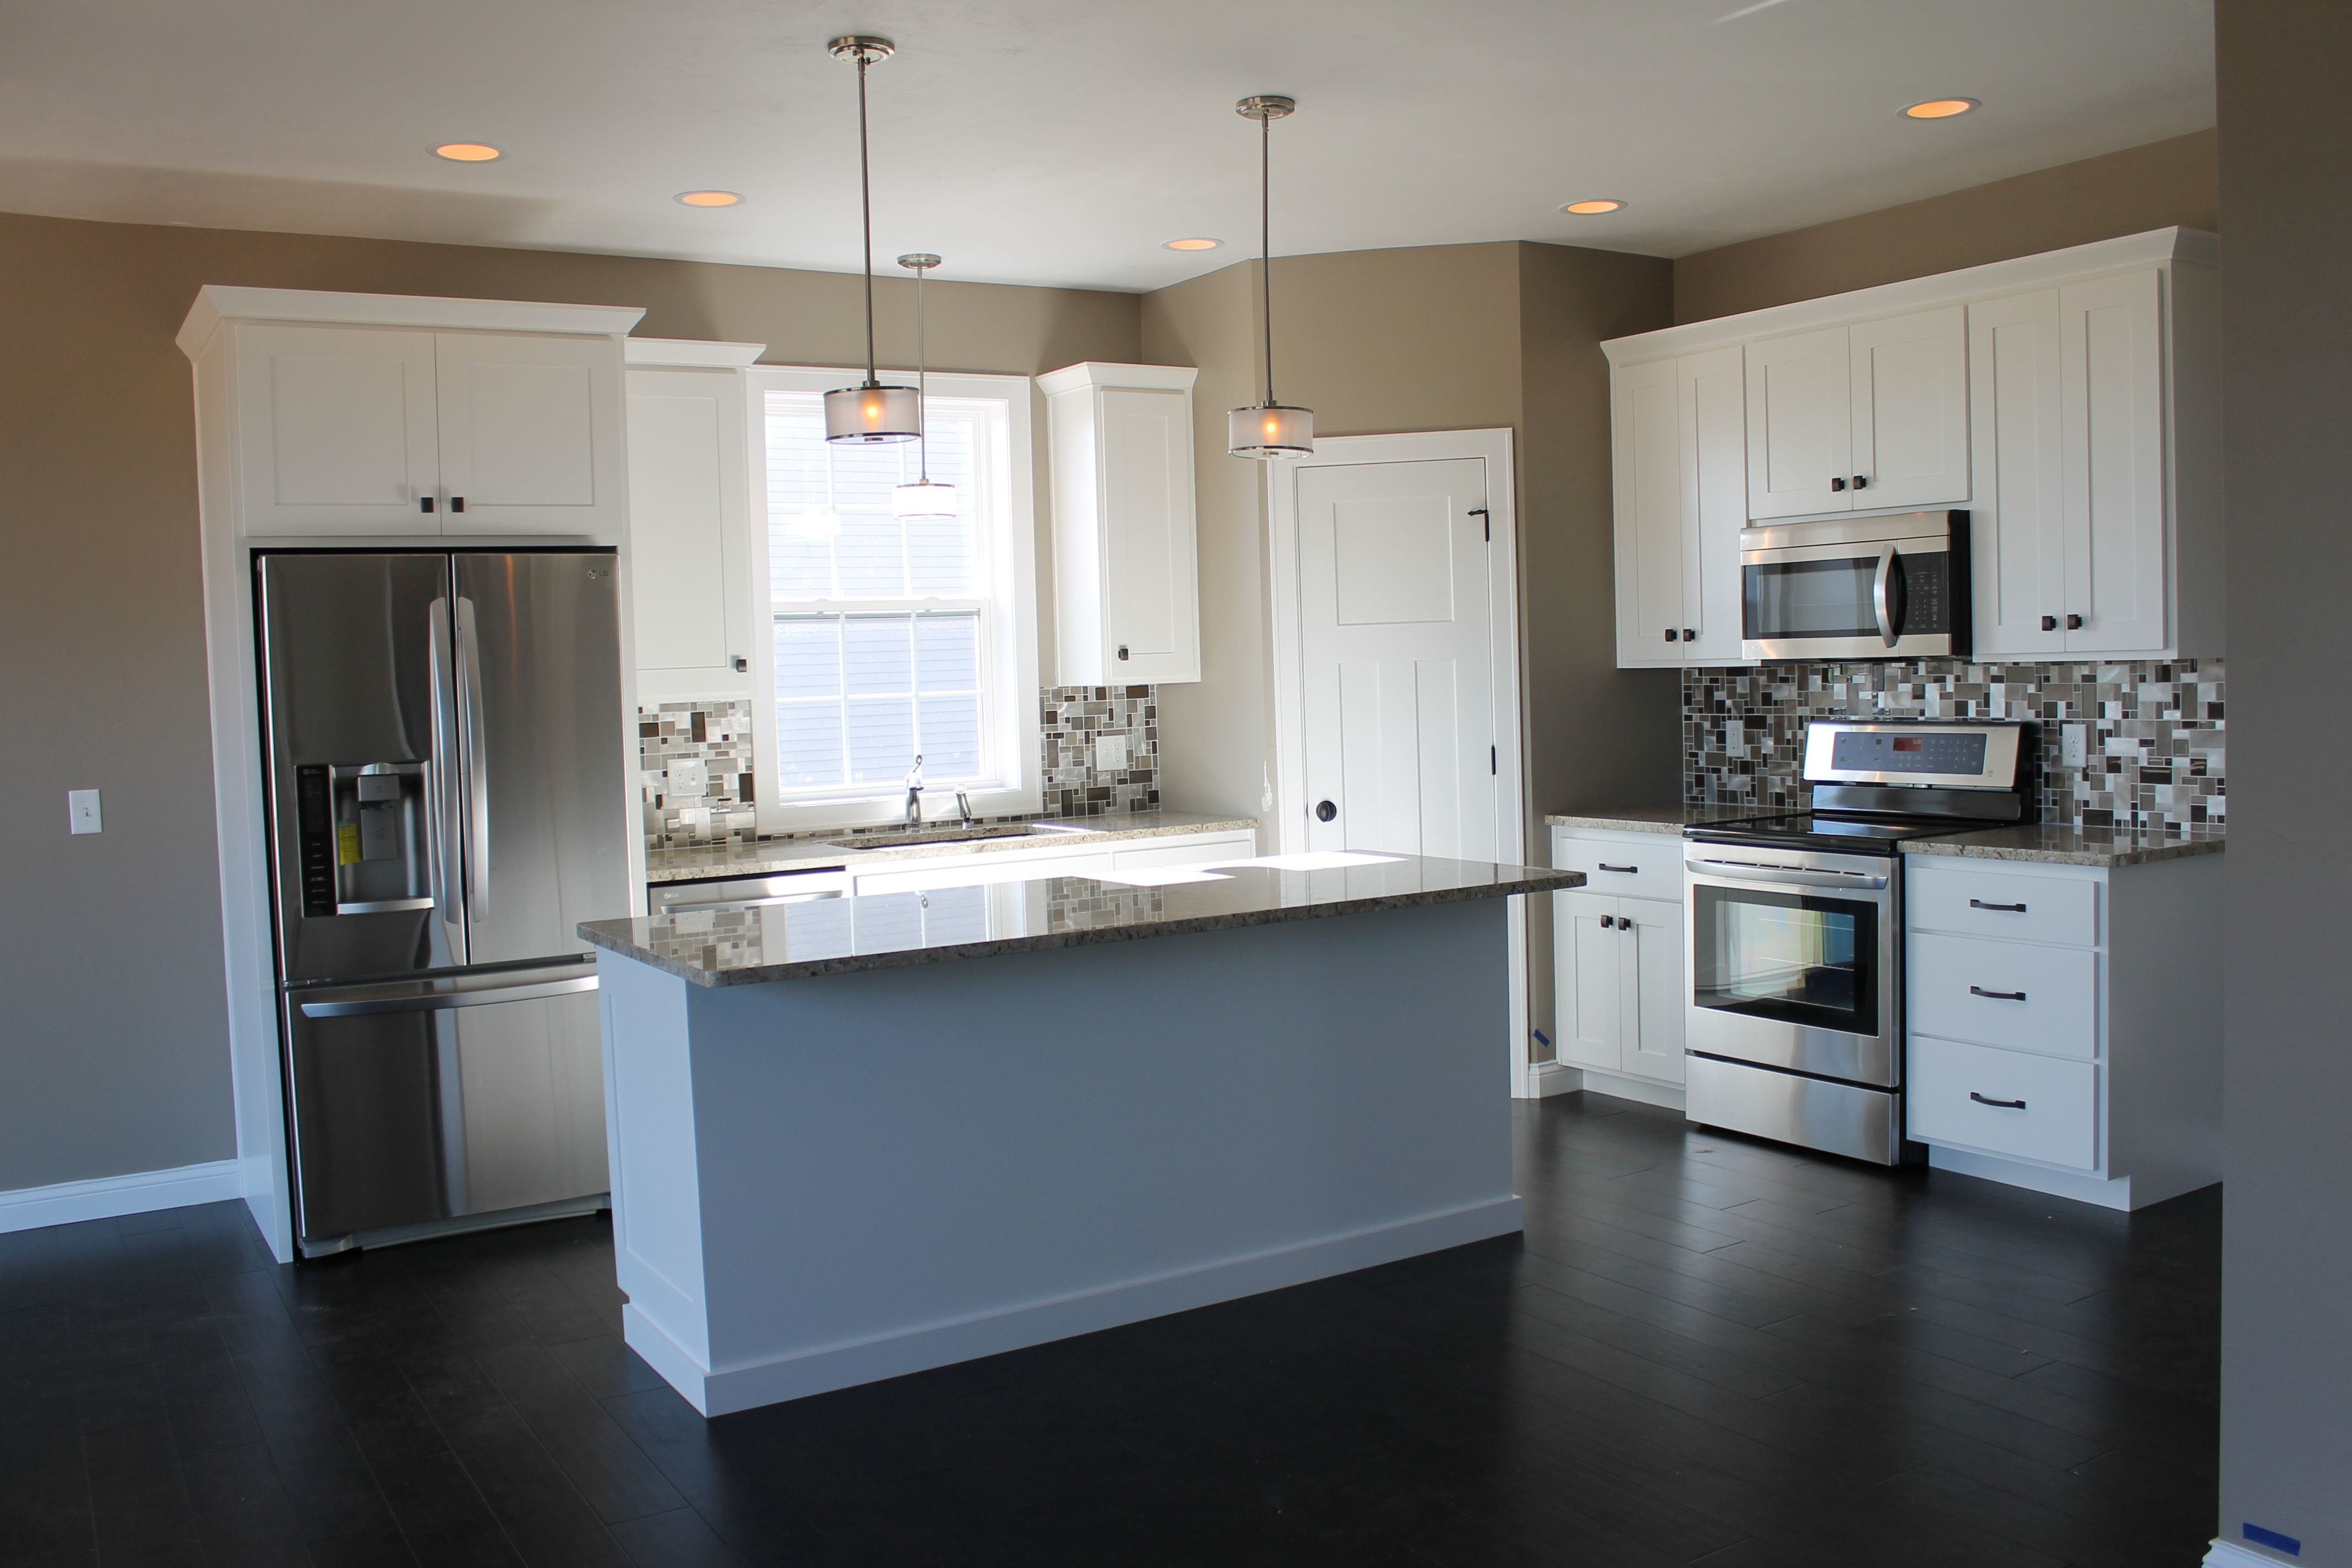 The Best Of White Cabinets Small Kitchen Layouts Kitchen Designs Layout Kitchen Layout